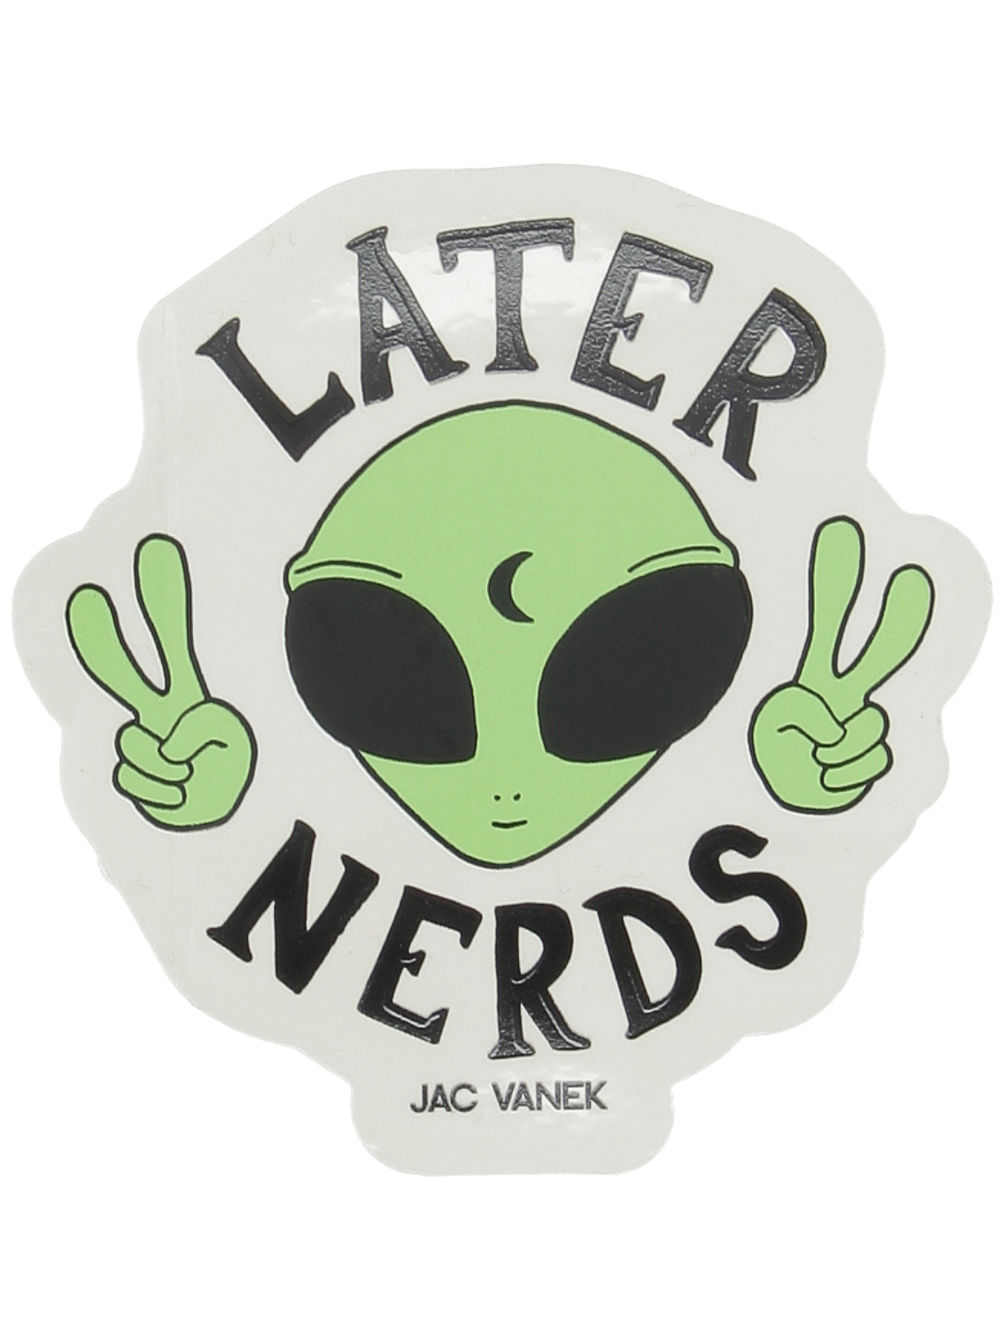 Later Nerds Sticker